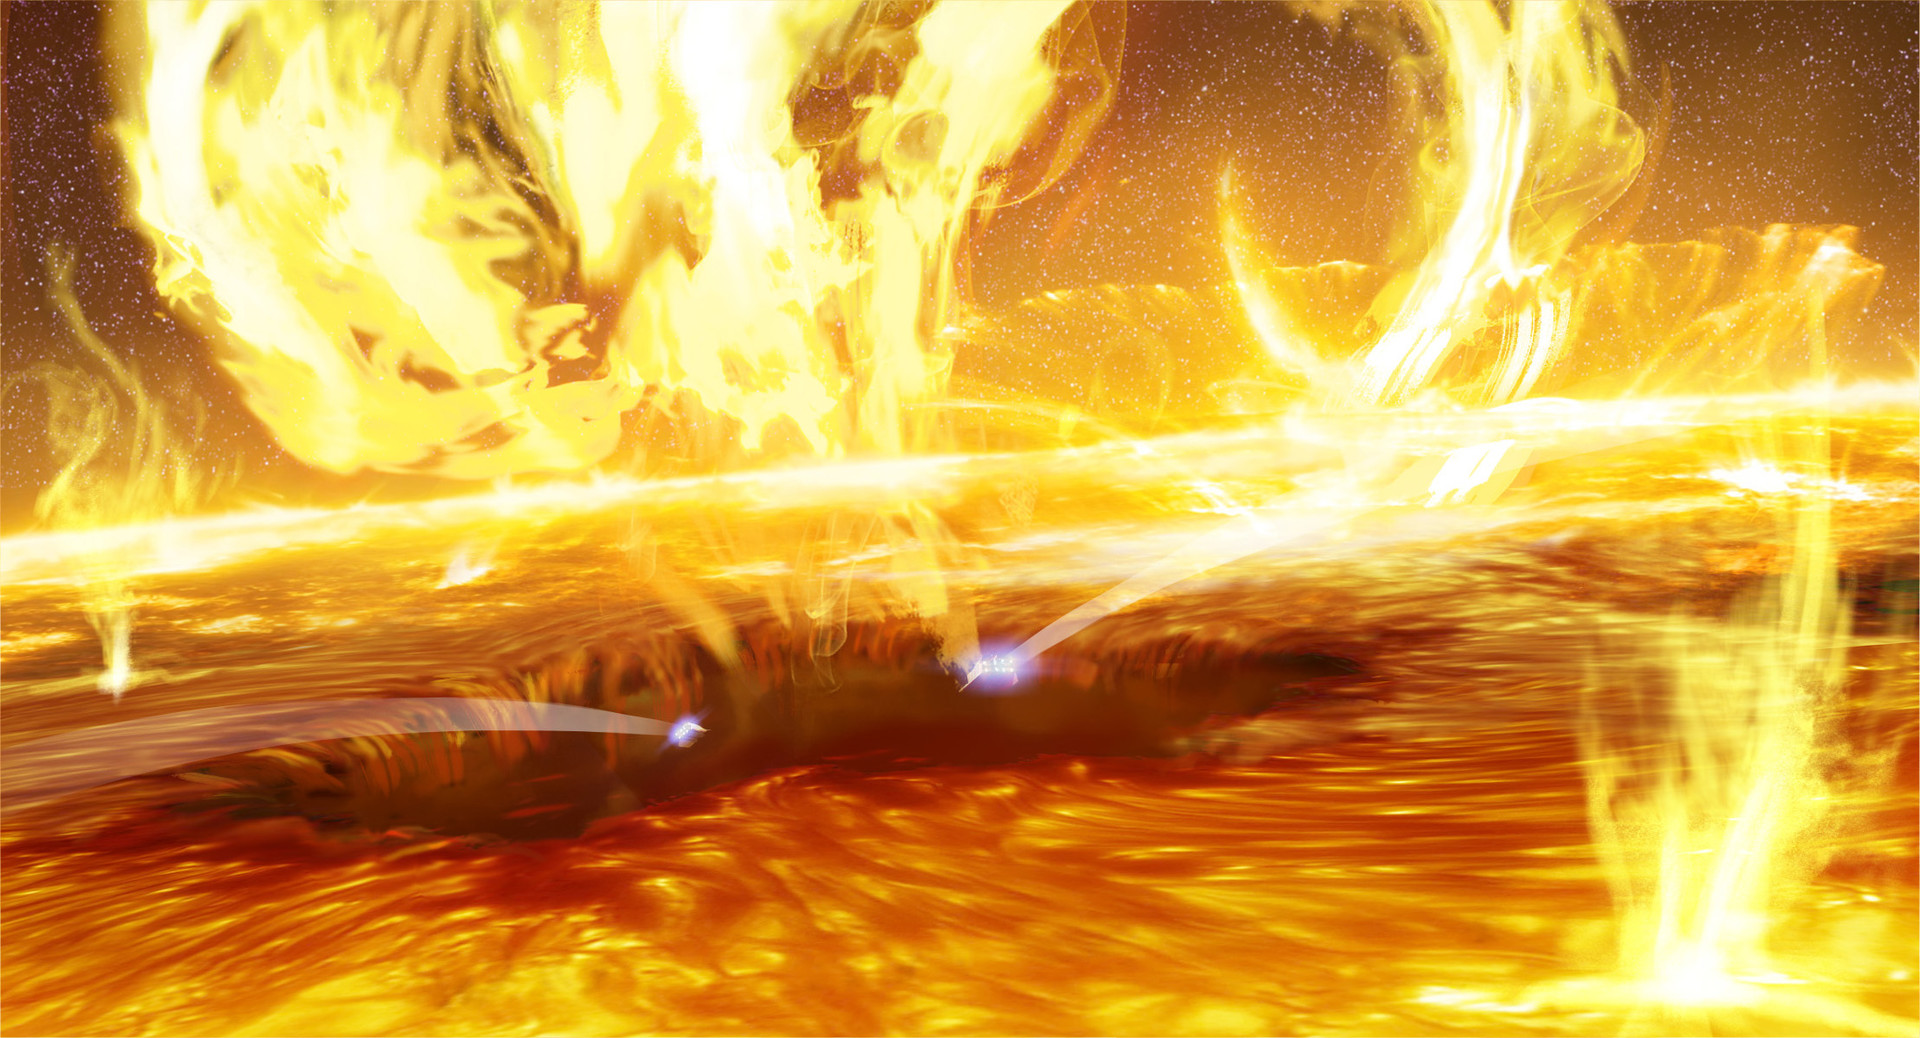 Our ships fall into the gaping hole in the burning surface of the sun.